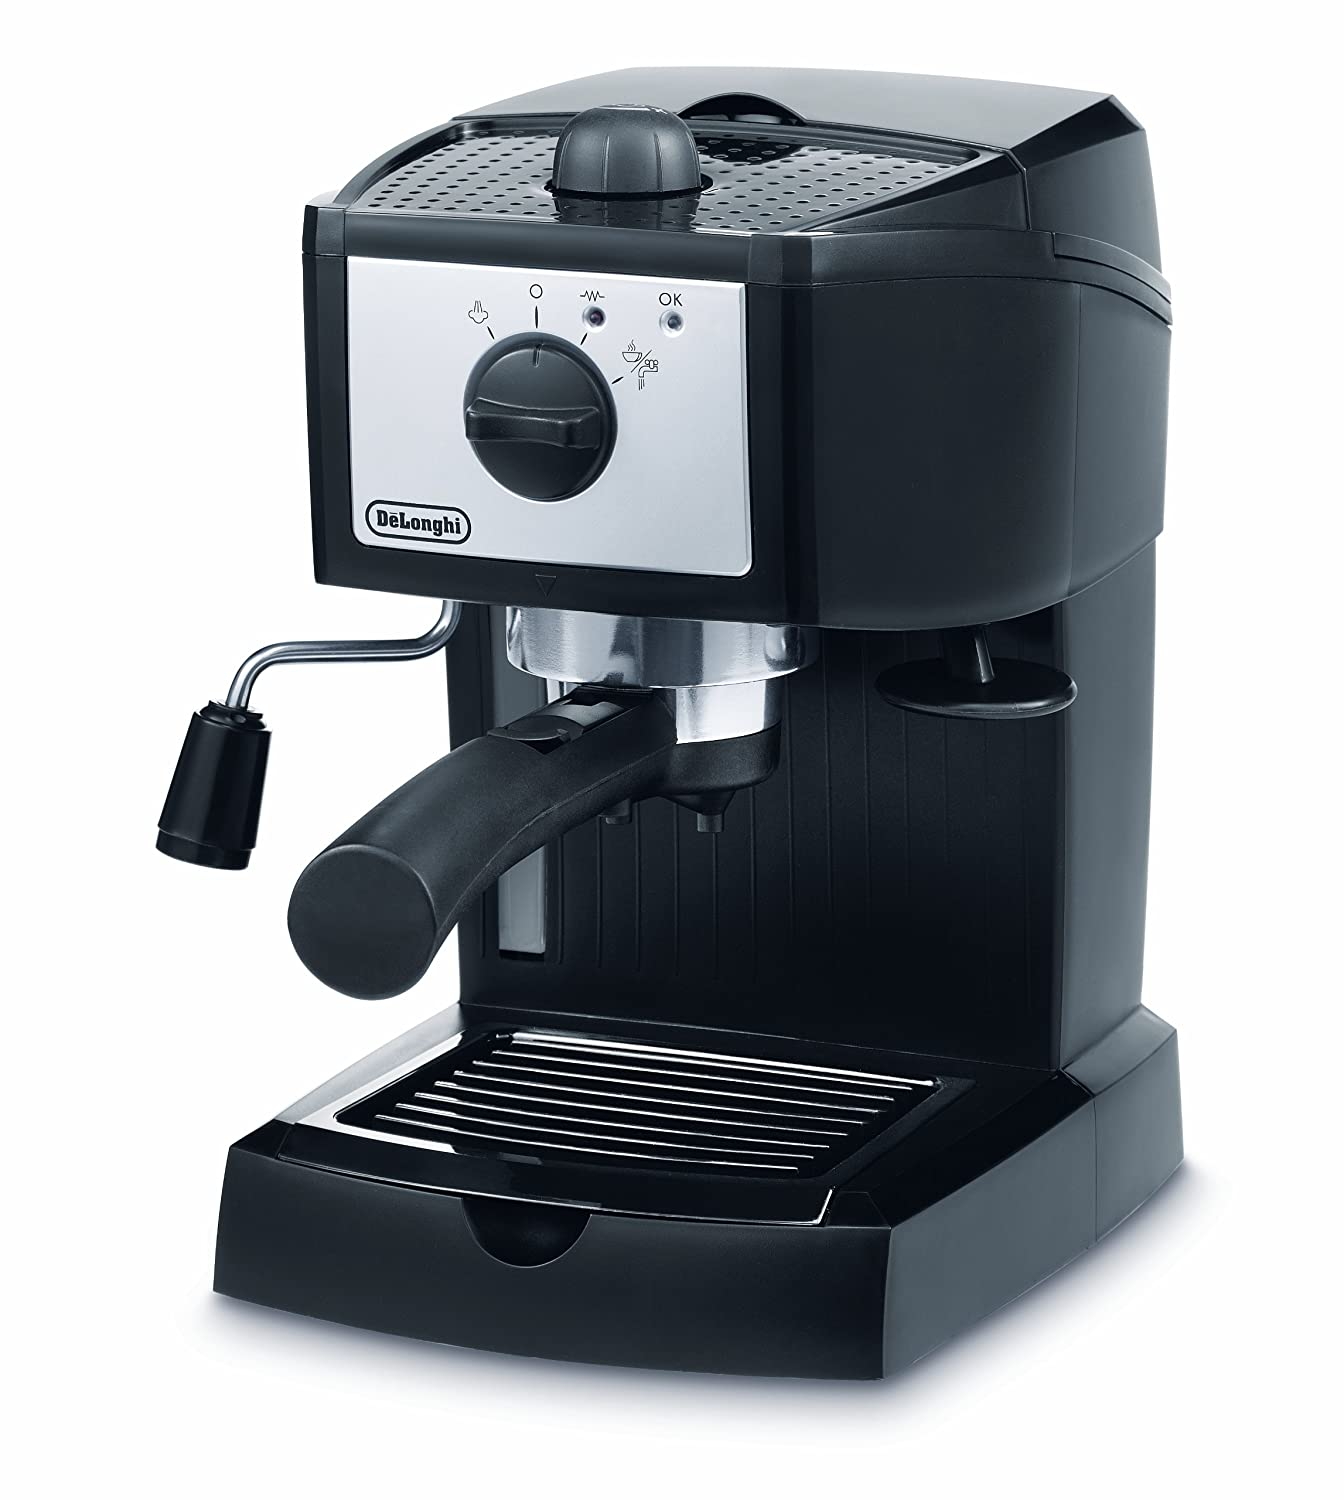 NEW DELONGHI EC152CD ESPRESSO COFFEE MACHINE WITH MILK FROTHER eBay